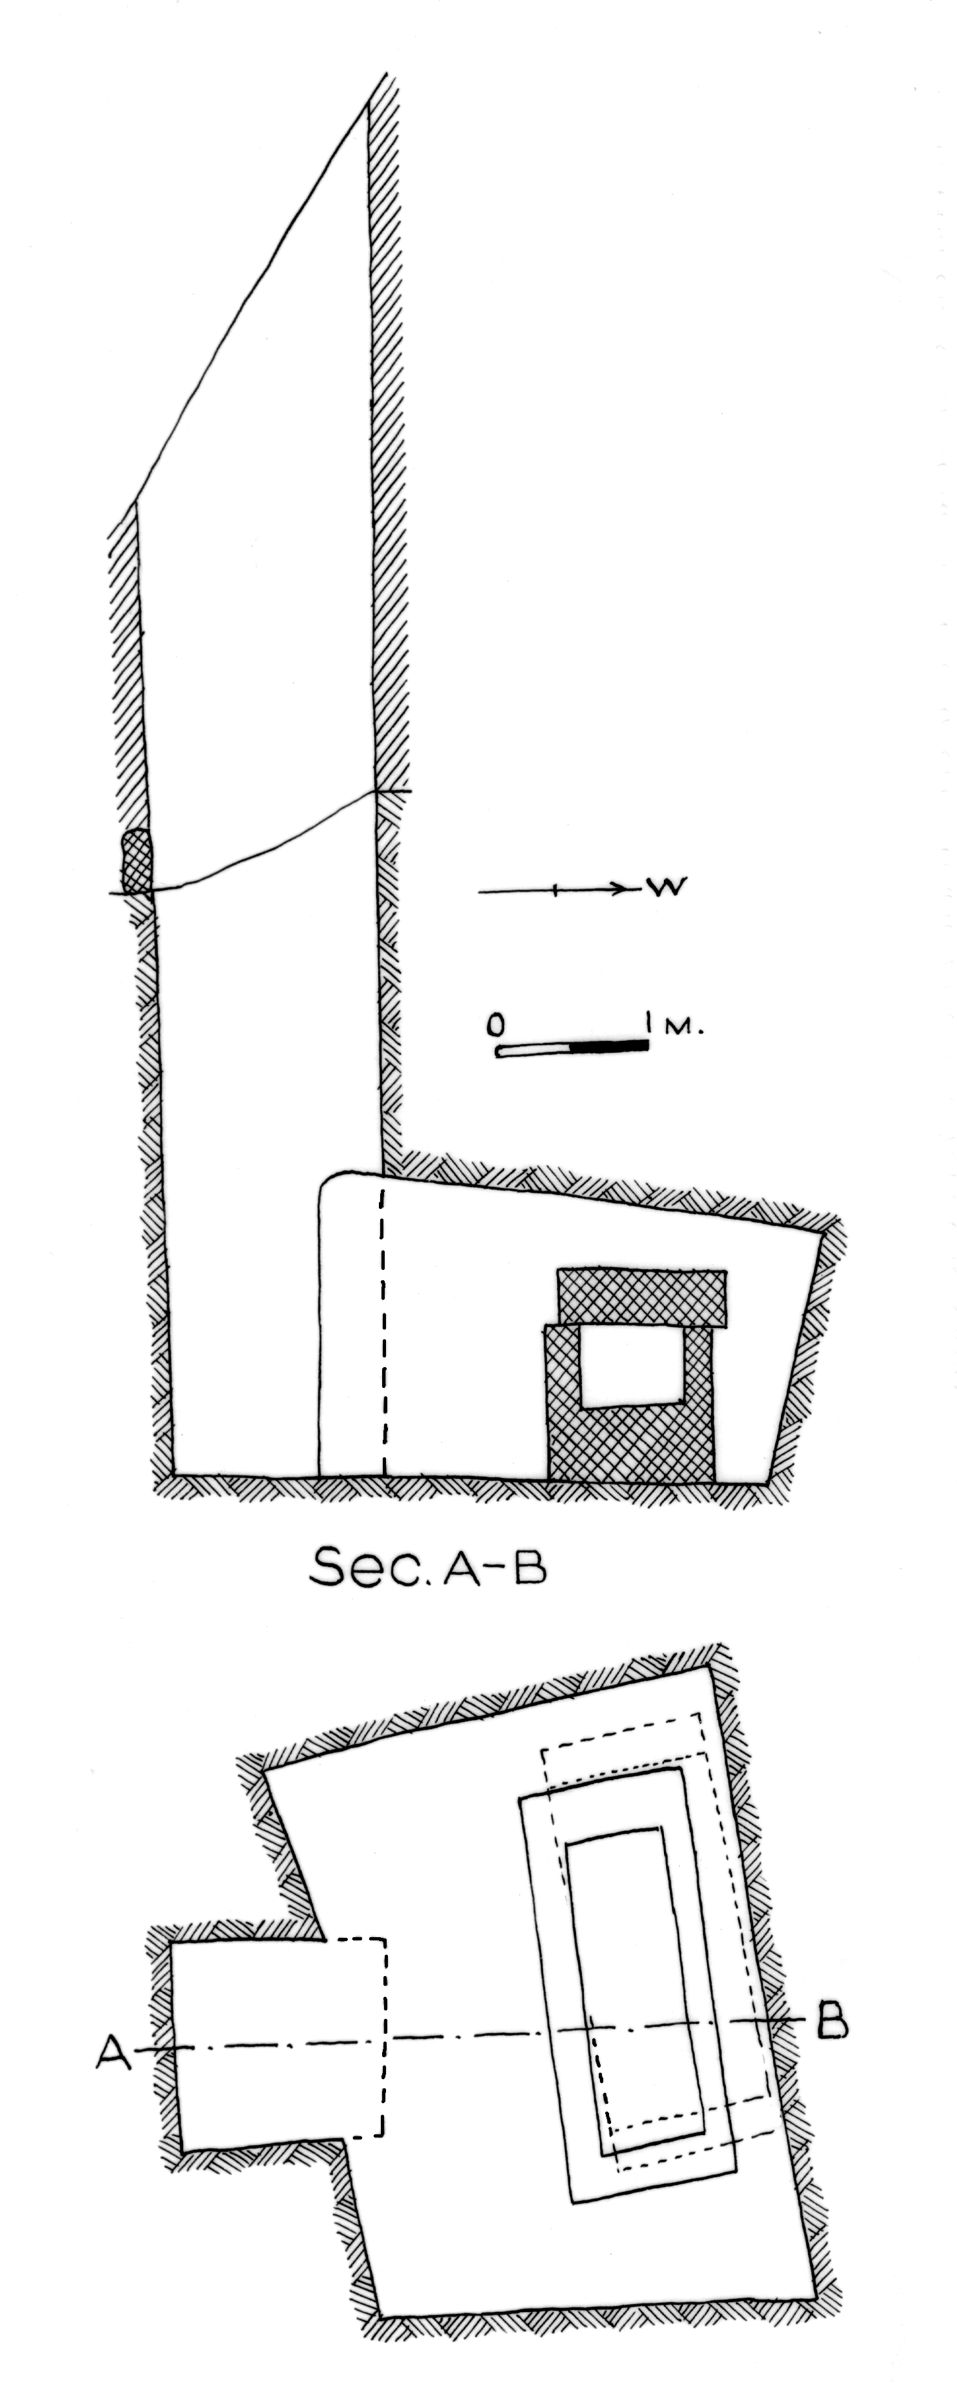 Maps and plans: G 7412, Shaft B